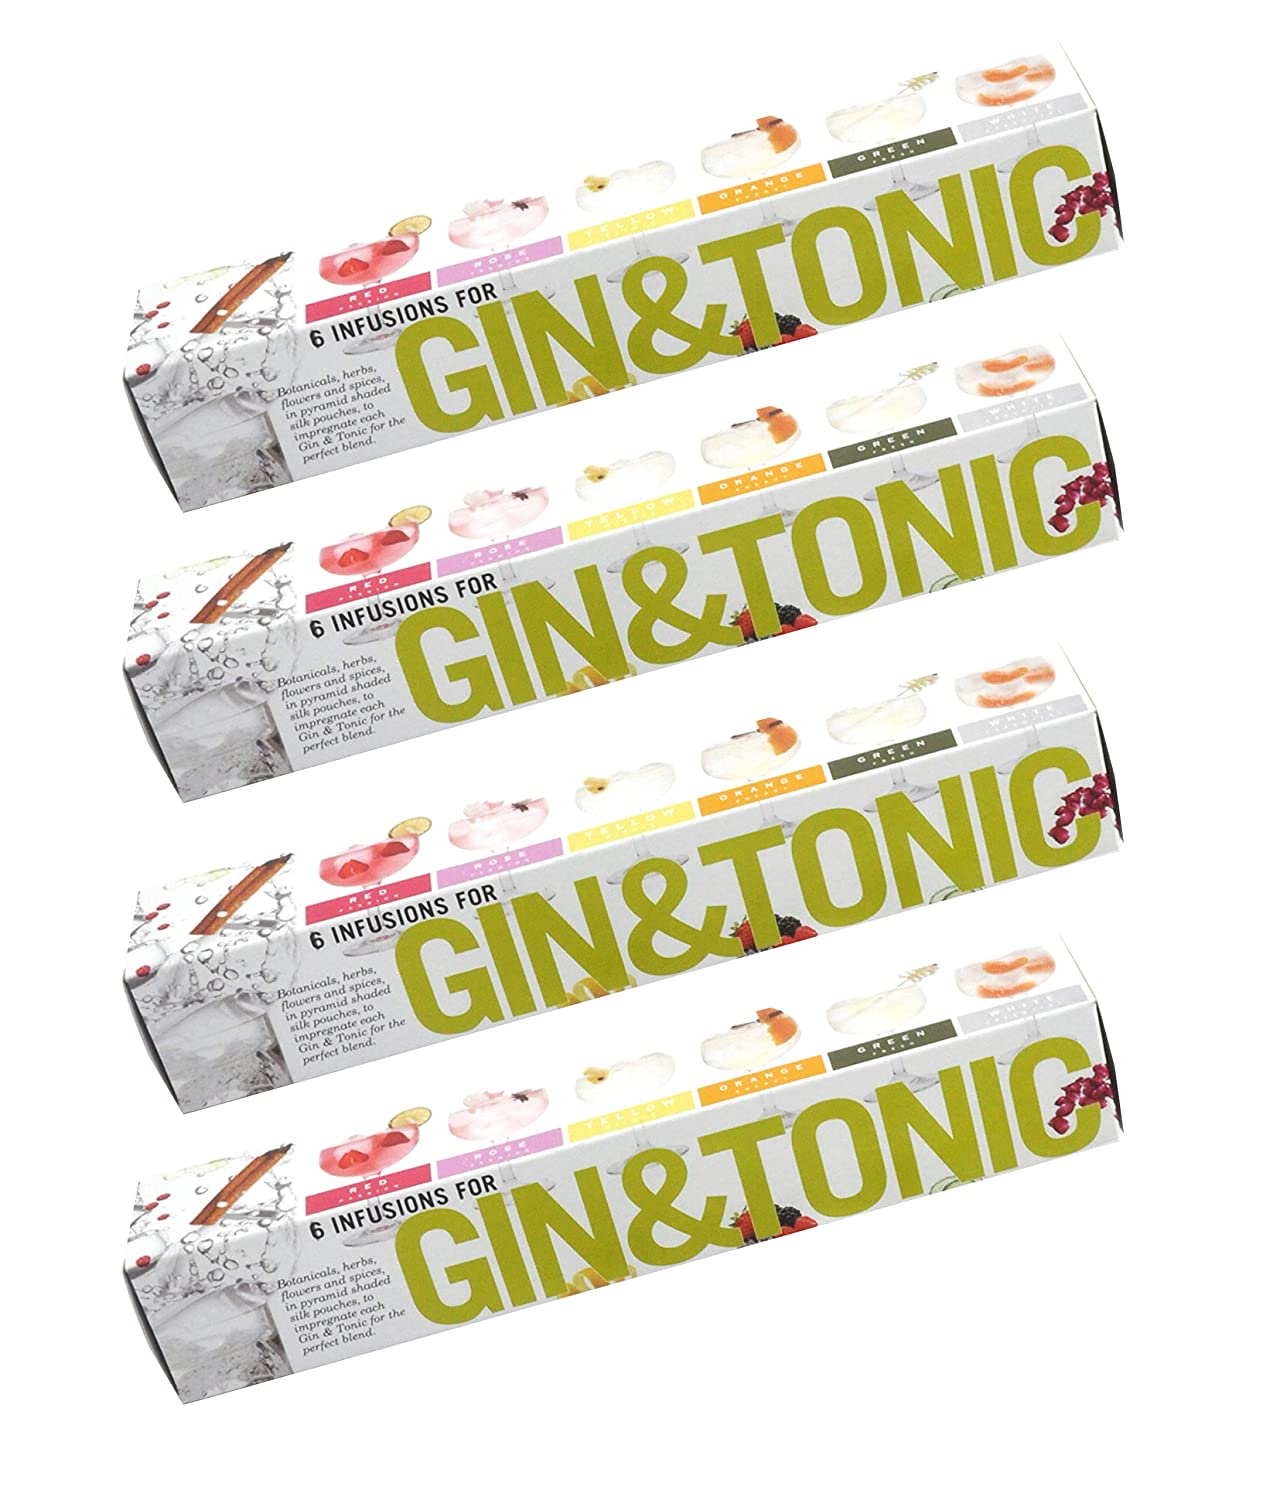 Te Tonic Gin And Our shop most discount popular kit- Botanicals Flavored 6 Different